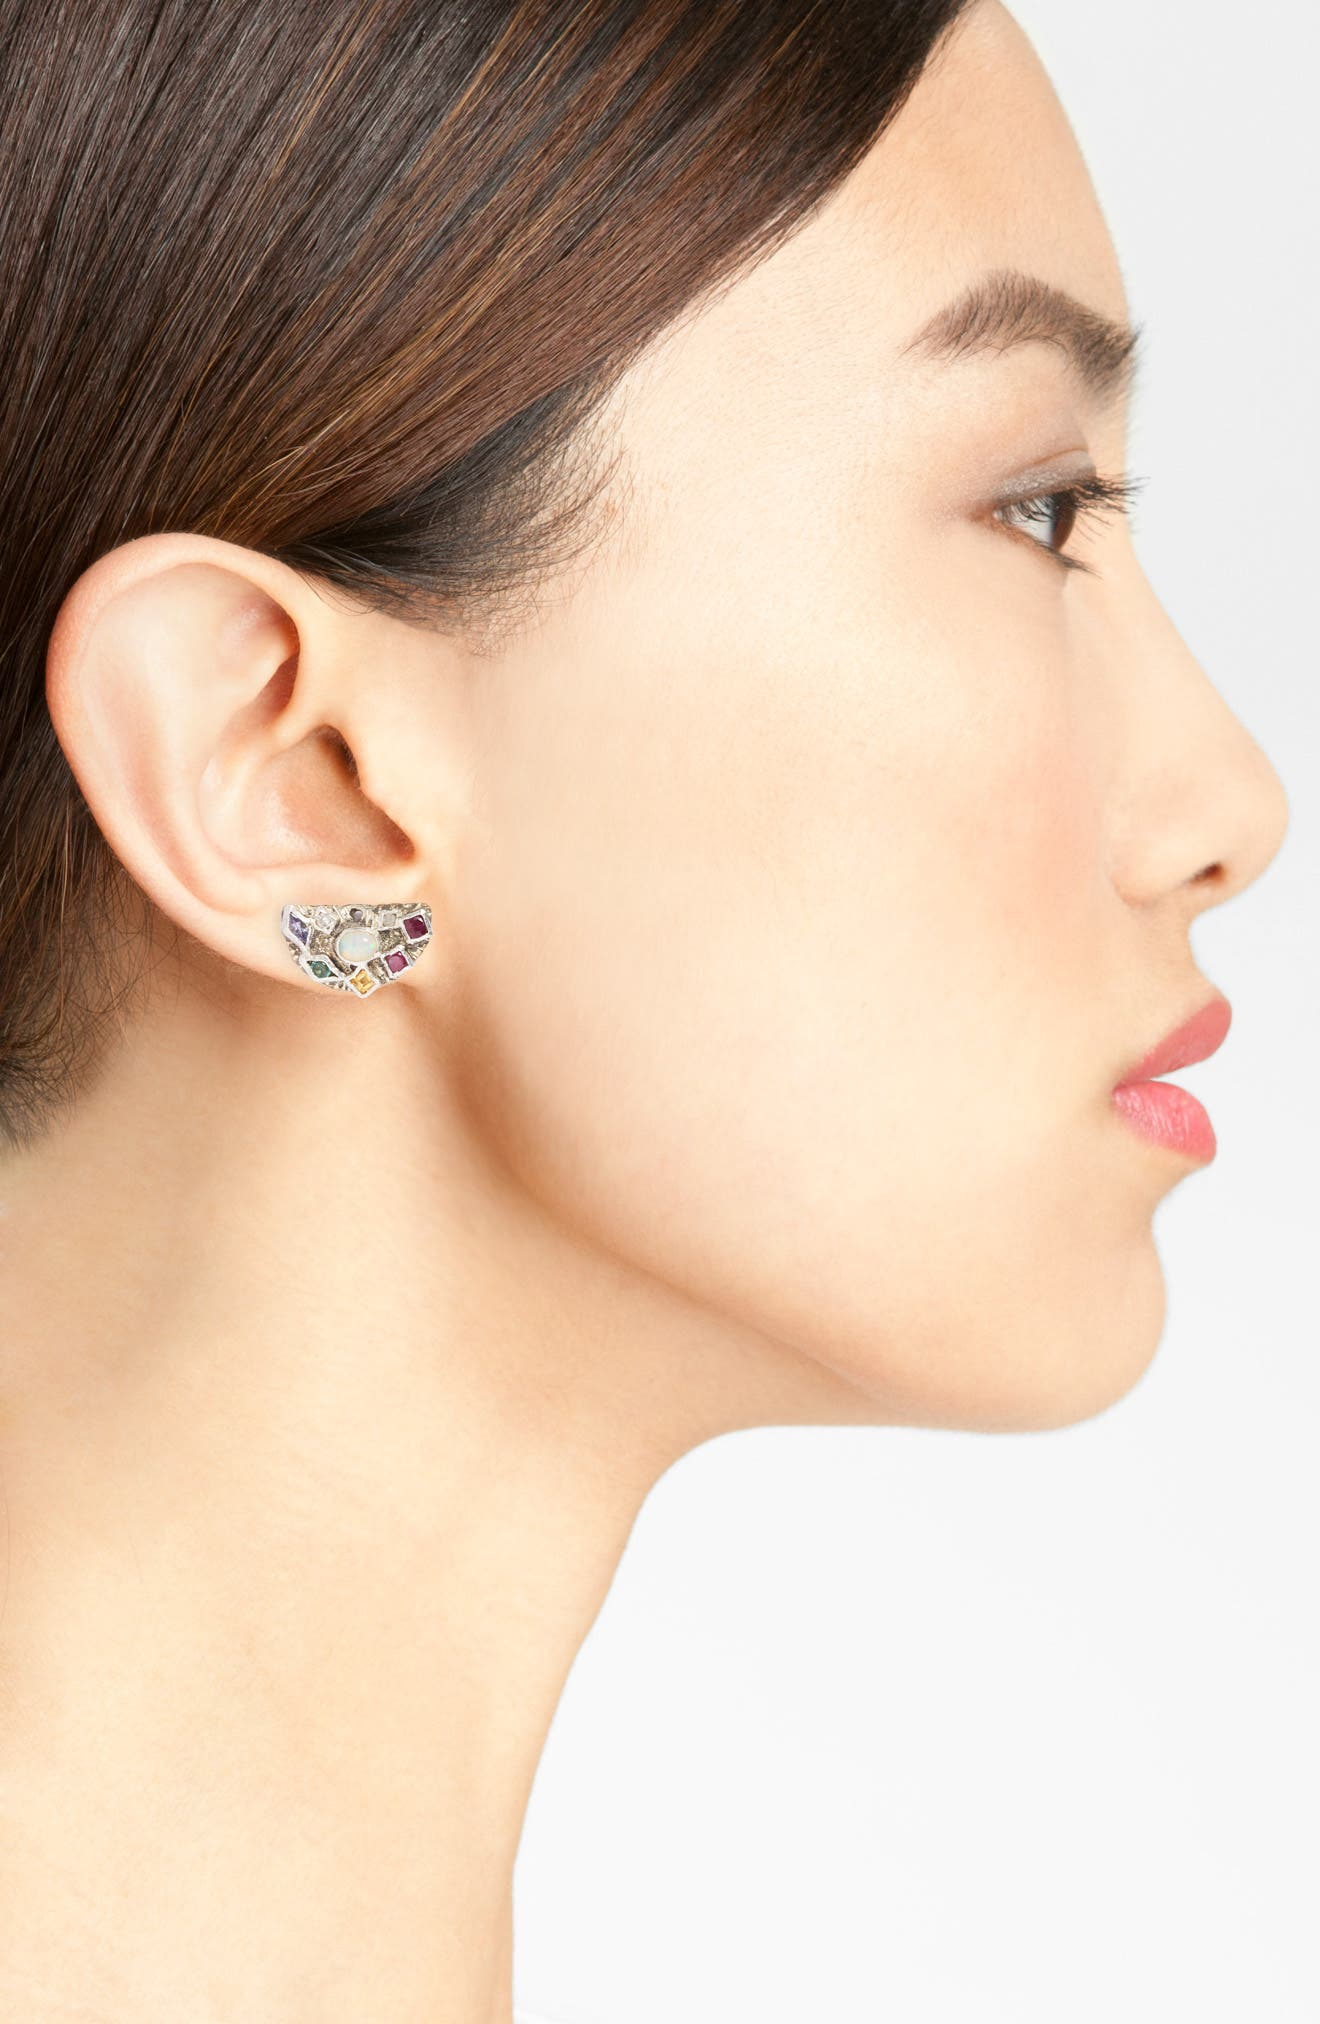 Multistone Ear Jacket with Sterling Silver Stud,                             Alternate thumbnail 2, color,                             710